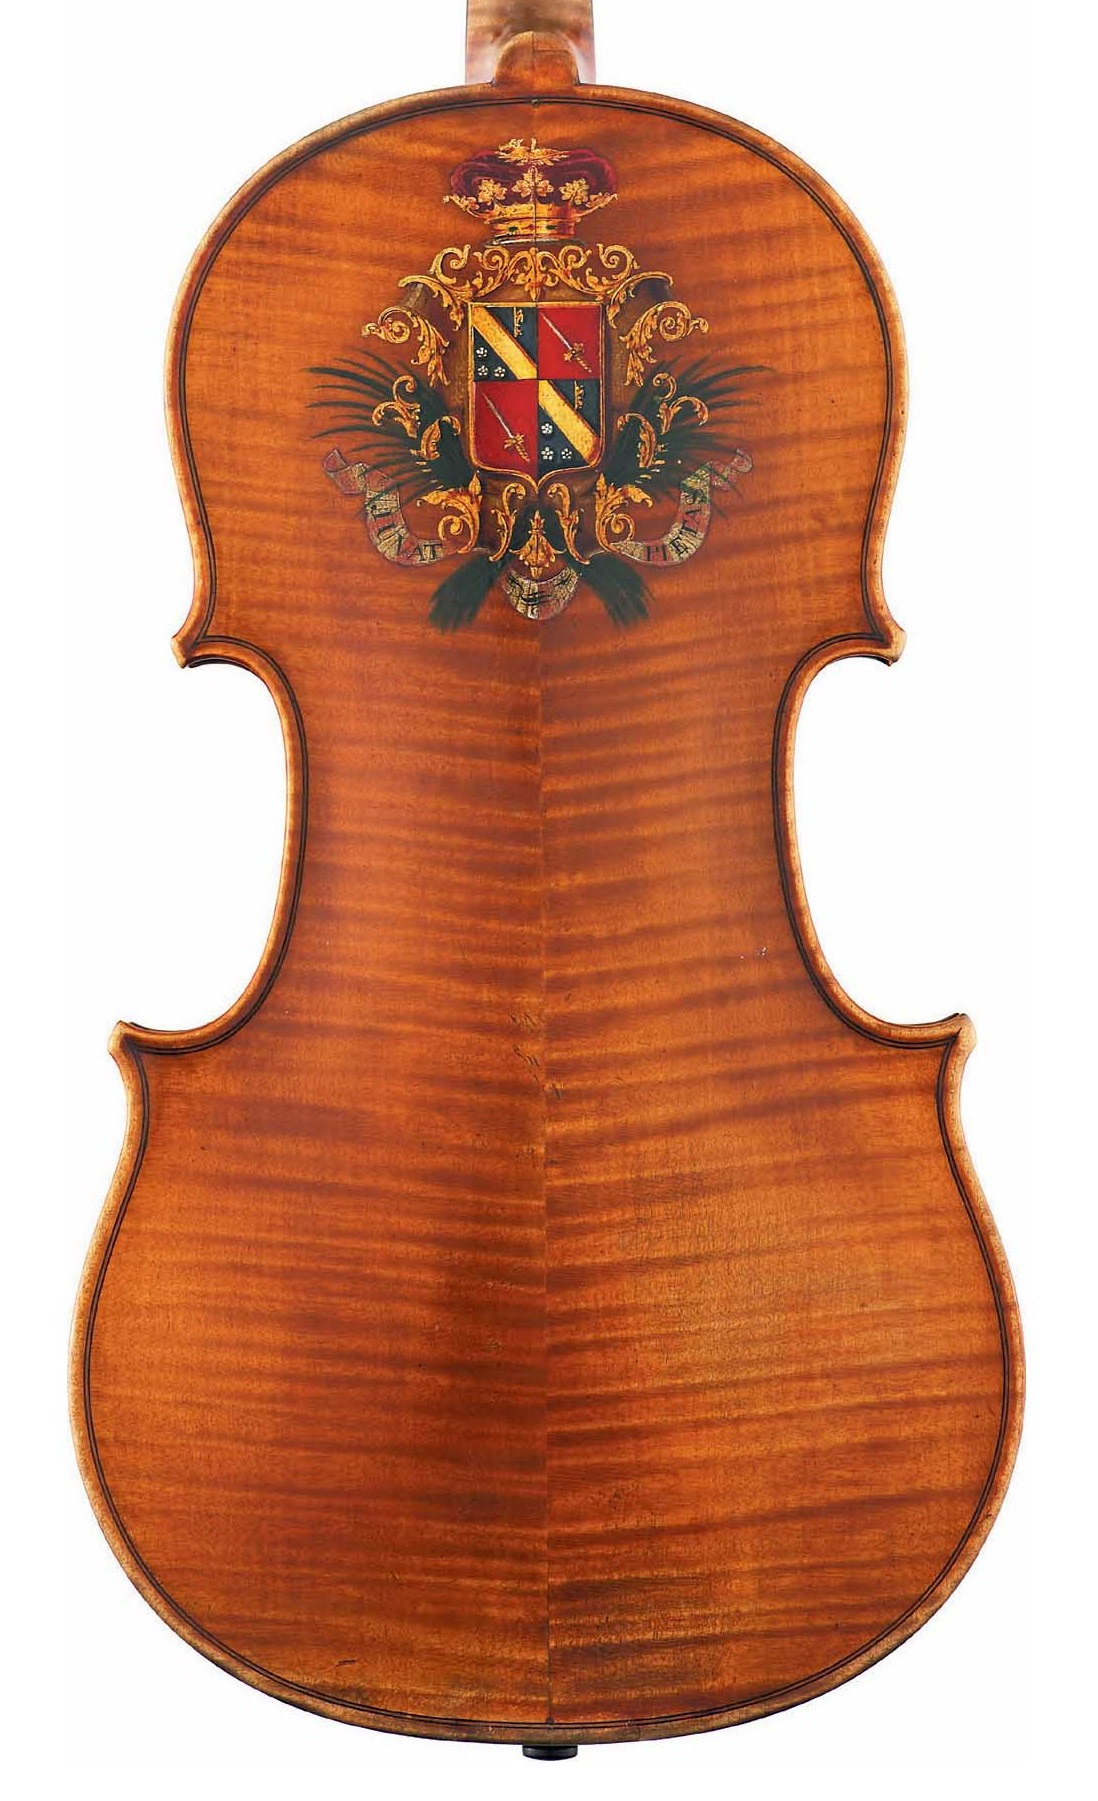 Back of decorated viola by JB Vuillaume, ex-Caraman de Chimay, dated 1865, exhibited by Ingles & Hayday at Sotheby's in 2012